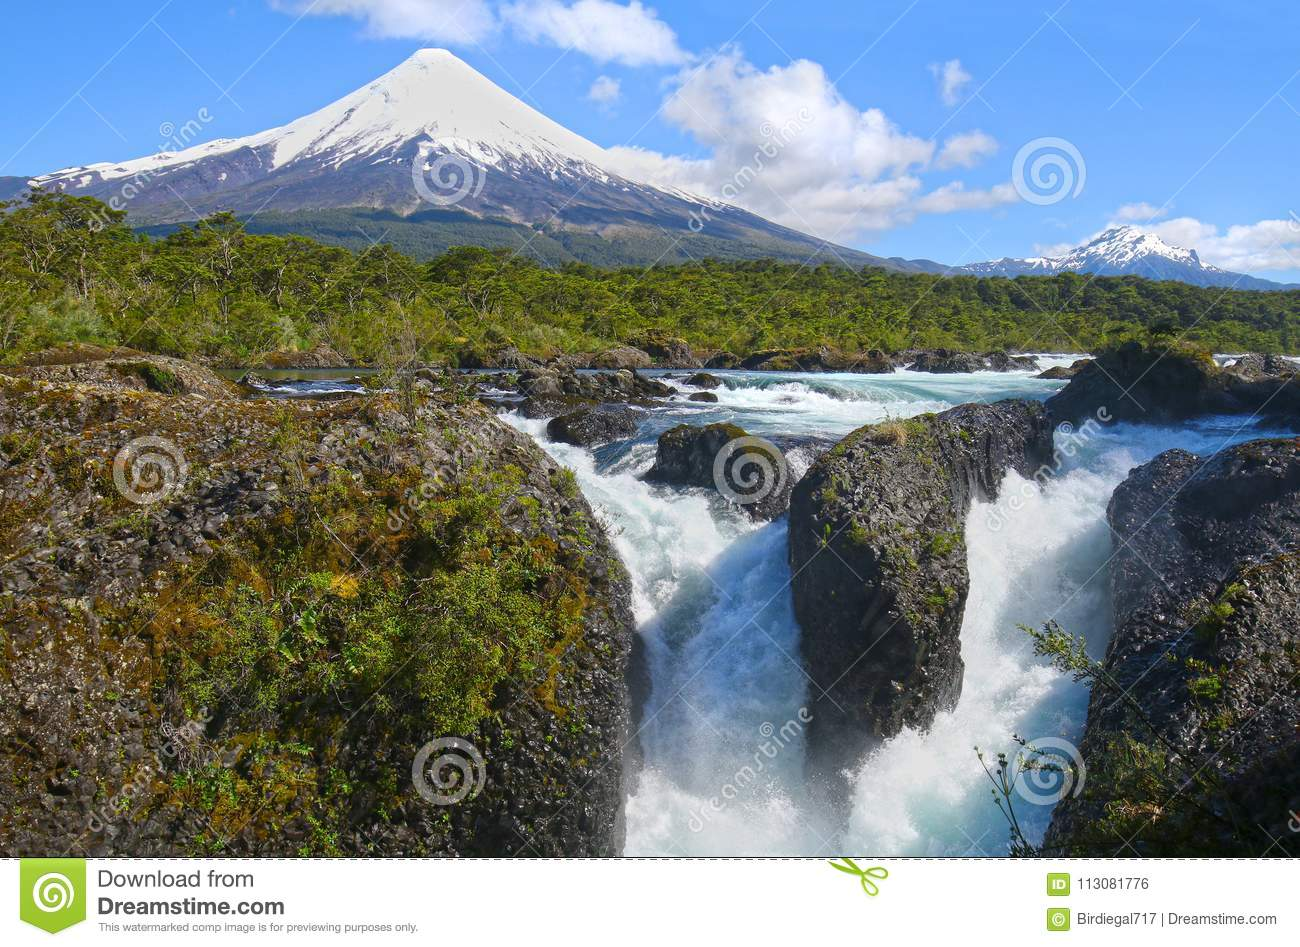 Petrohue Waterfalls with Osorno Volcano in the background. Near the City of Puerto Varas, Chile.